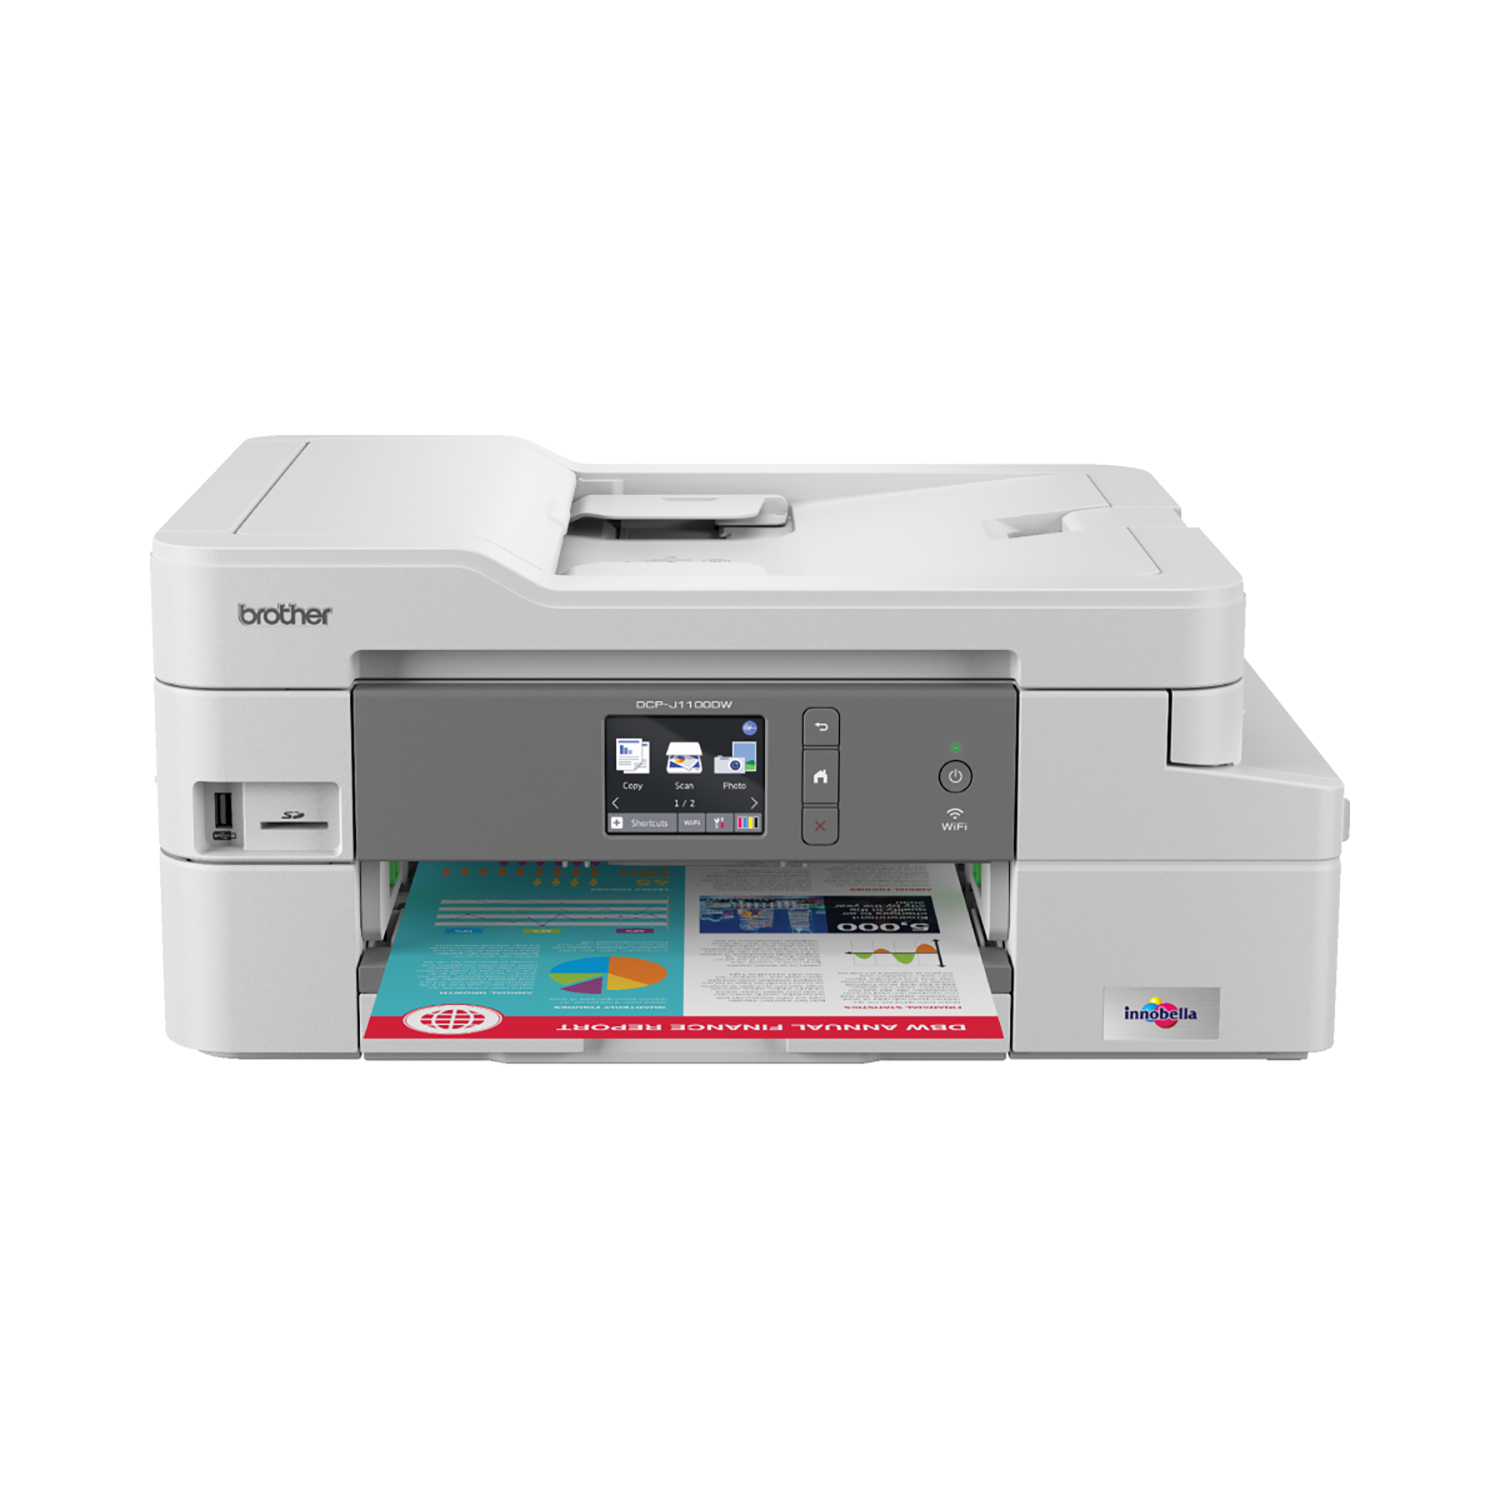 Brother DCPJ1100DW All-in-Box Inkjet Printer Ref DCPJ1100DWZU1